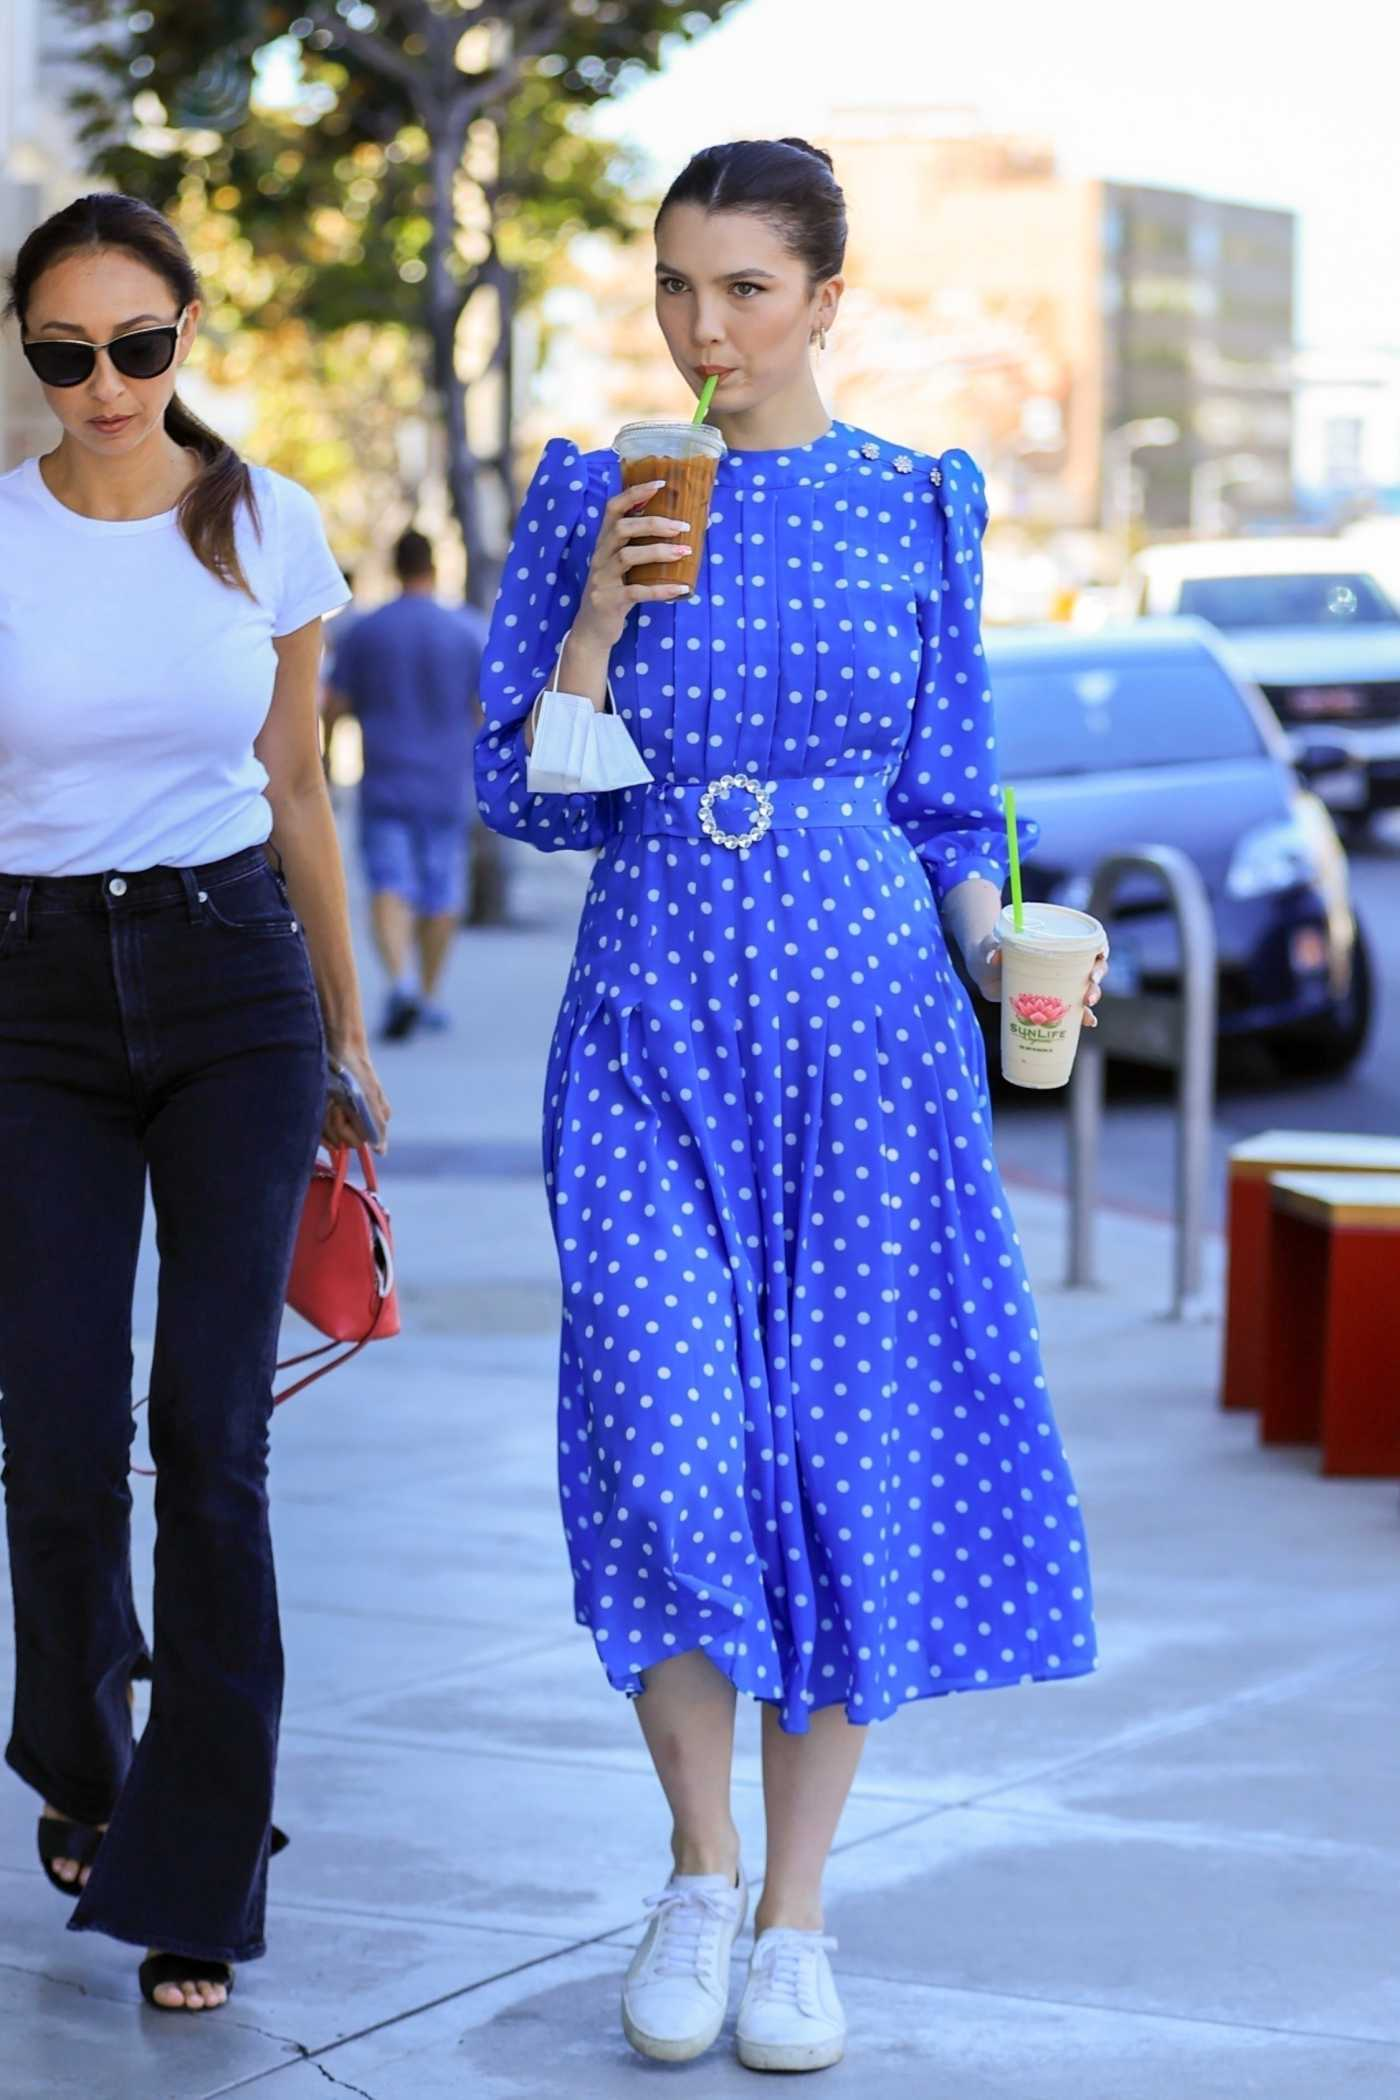 Maya Henry in a Blue Polka Dot Dress Was Seen Out with Her Mother in West Hollywood 06/15/2021